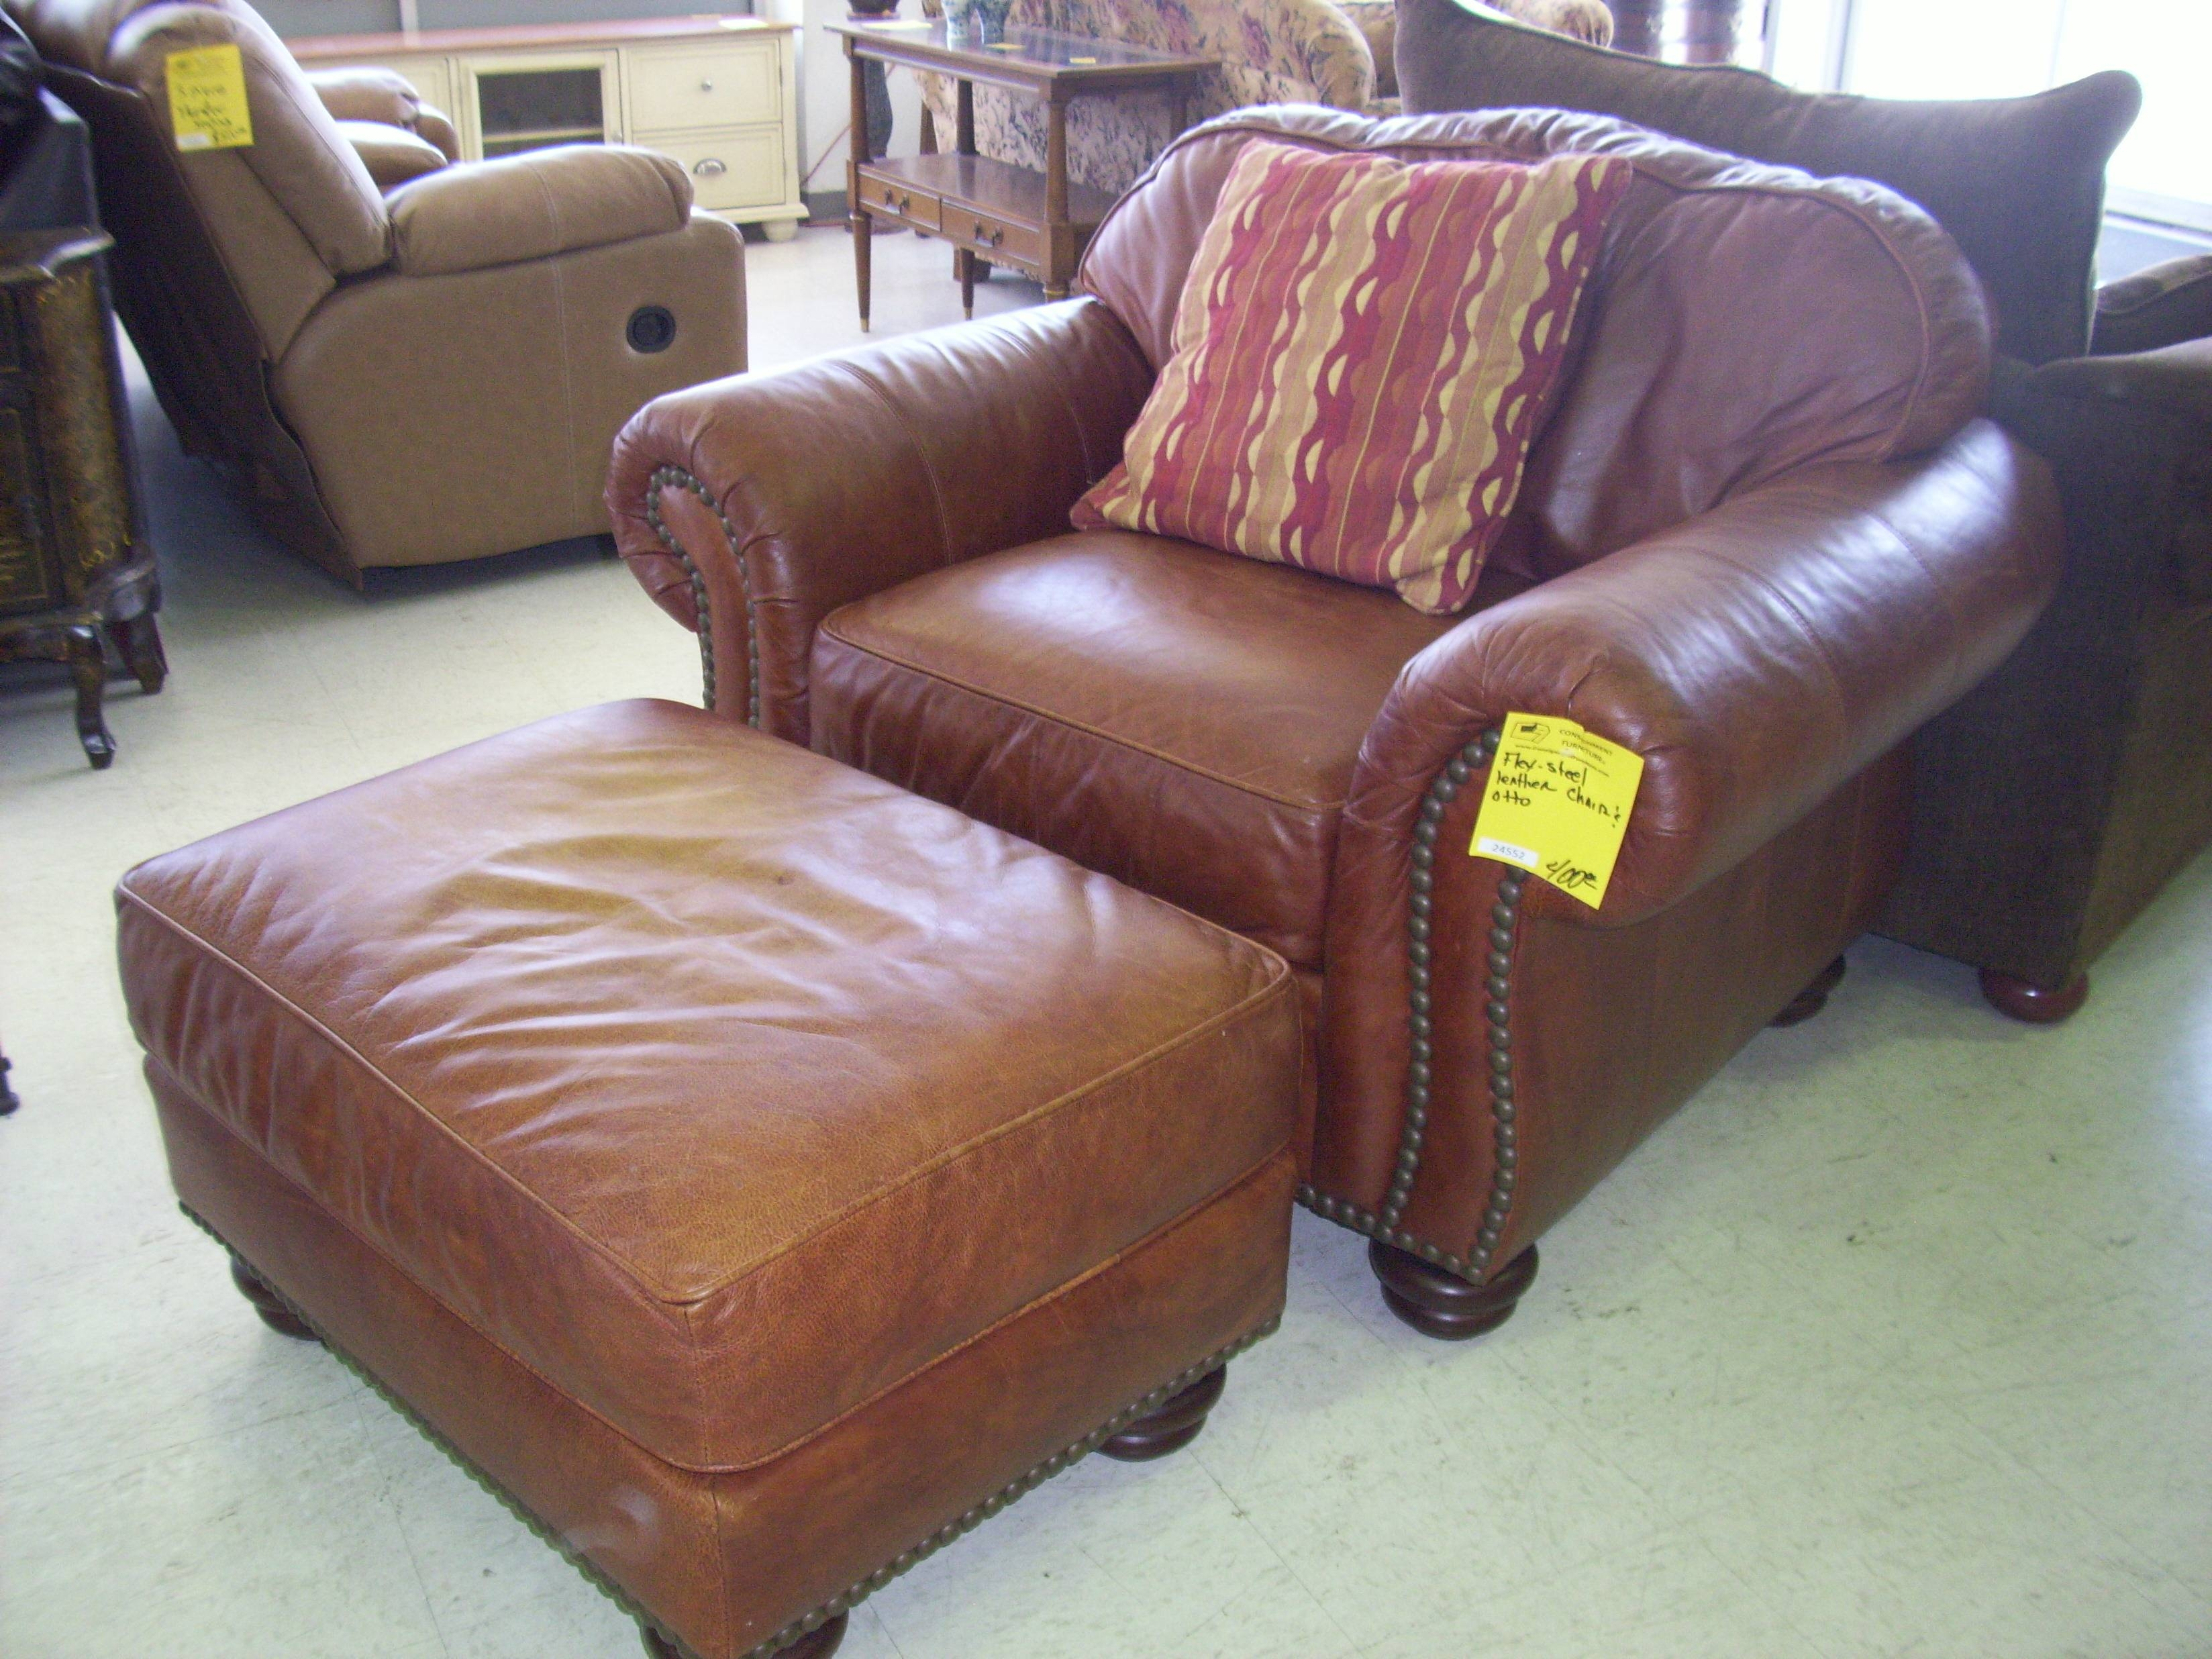 Gorgeous 80+ Cheap Living Room Chairs With Ottomans Design pertaining to Sofa Chair and Ottoman (Image 5 of 15)